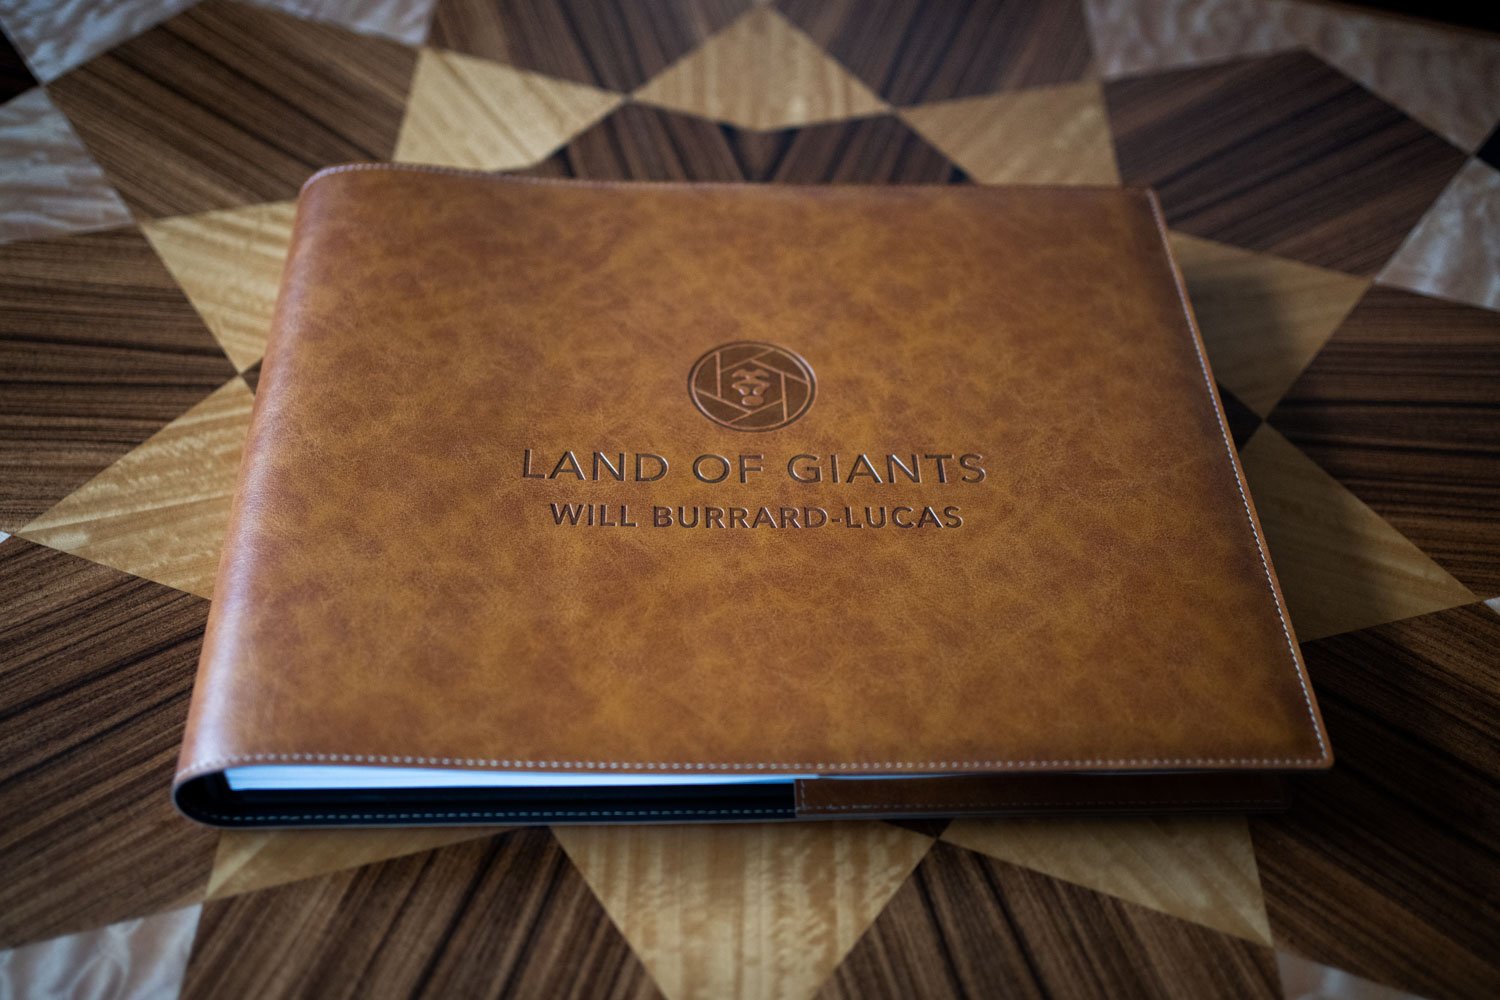 Land of Giants Special Edition - Will Burrard-Lucas